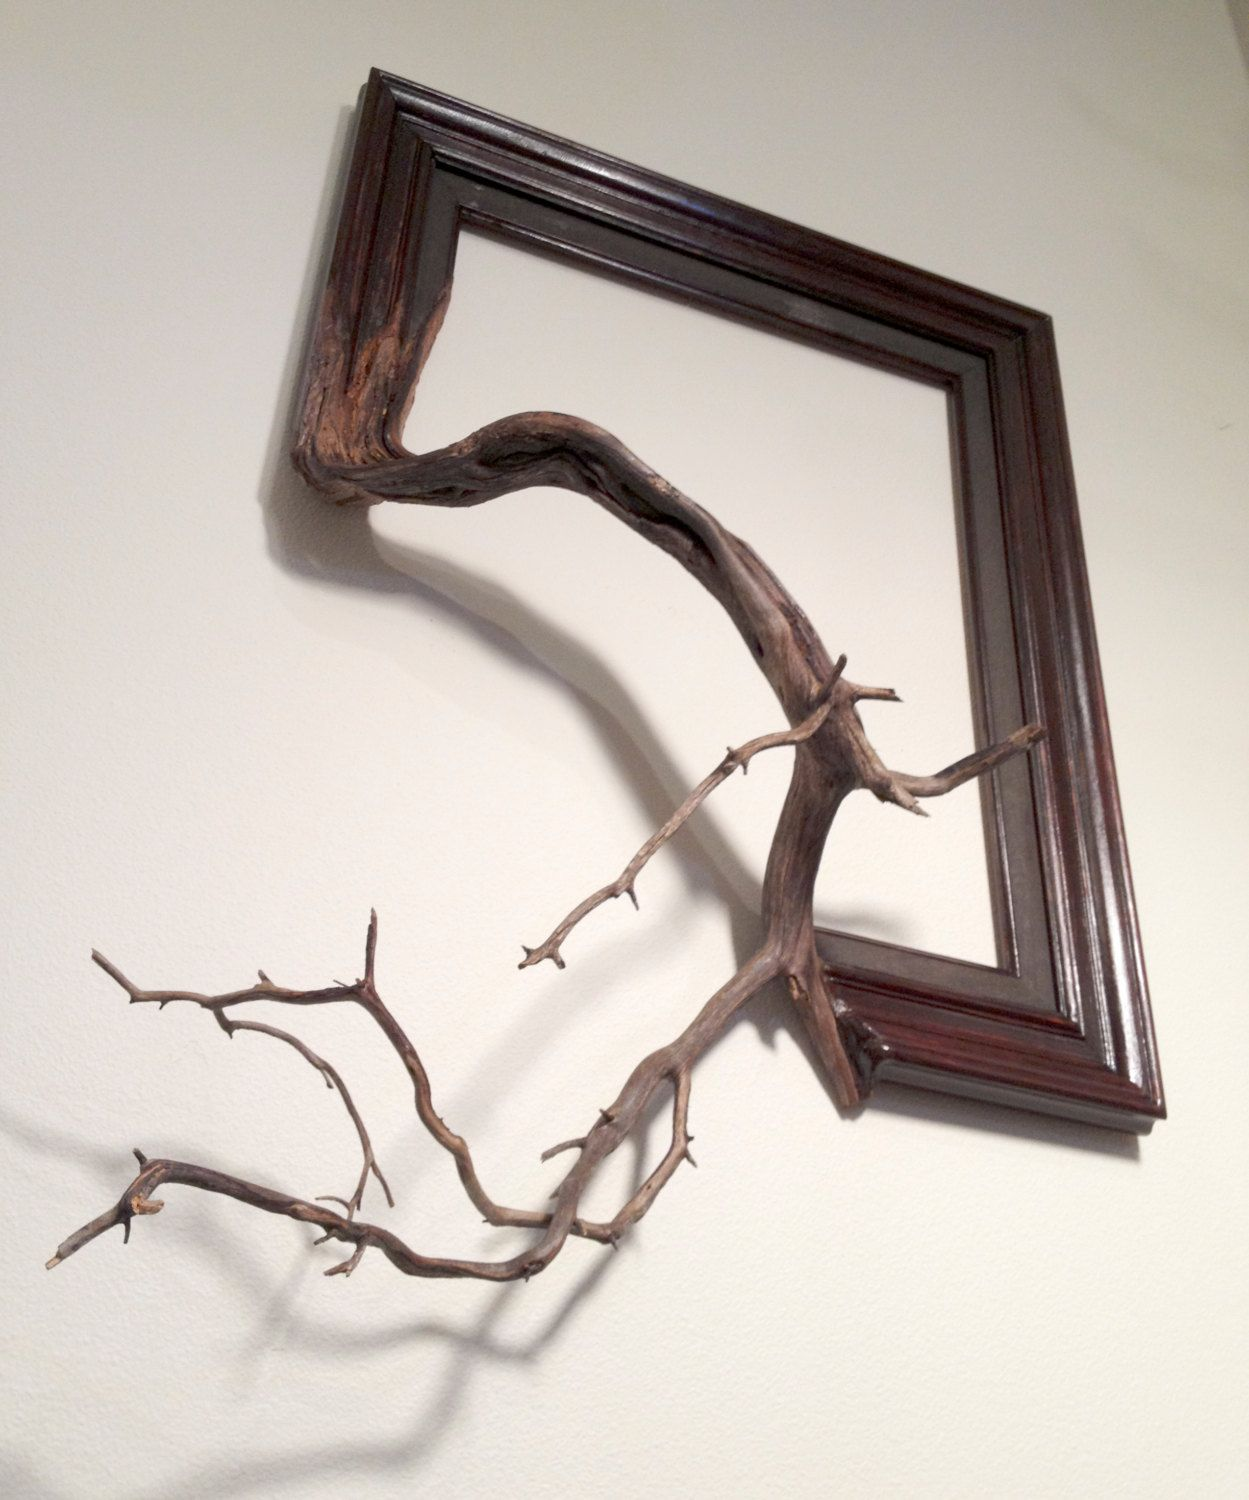 Wood frame with grafted manzanita branch oscar 21500 via wood frame with grafted manzanita branch oscar 21500 via etsy jeuxipadfo Choice Image